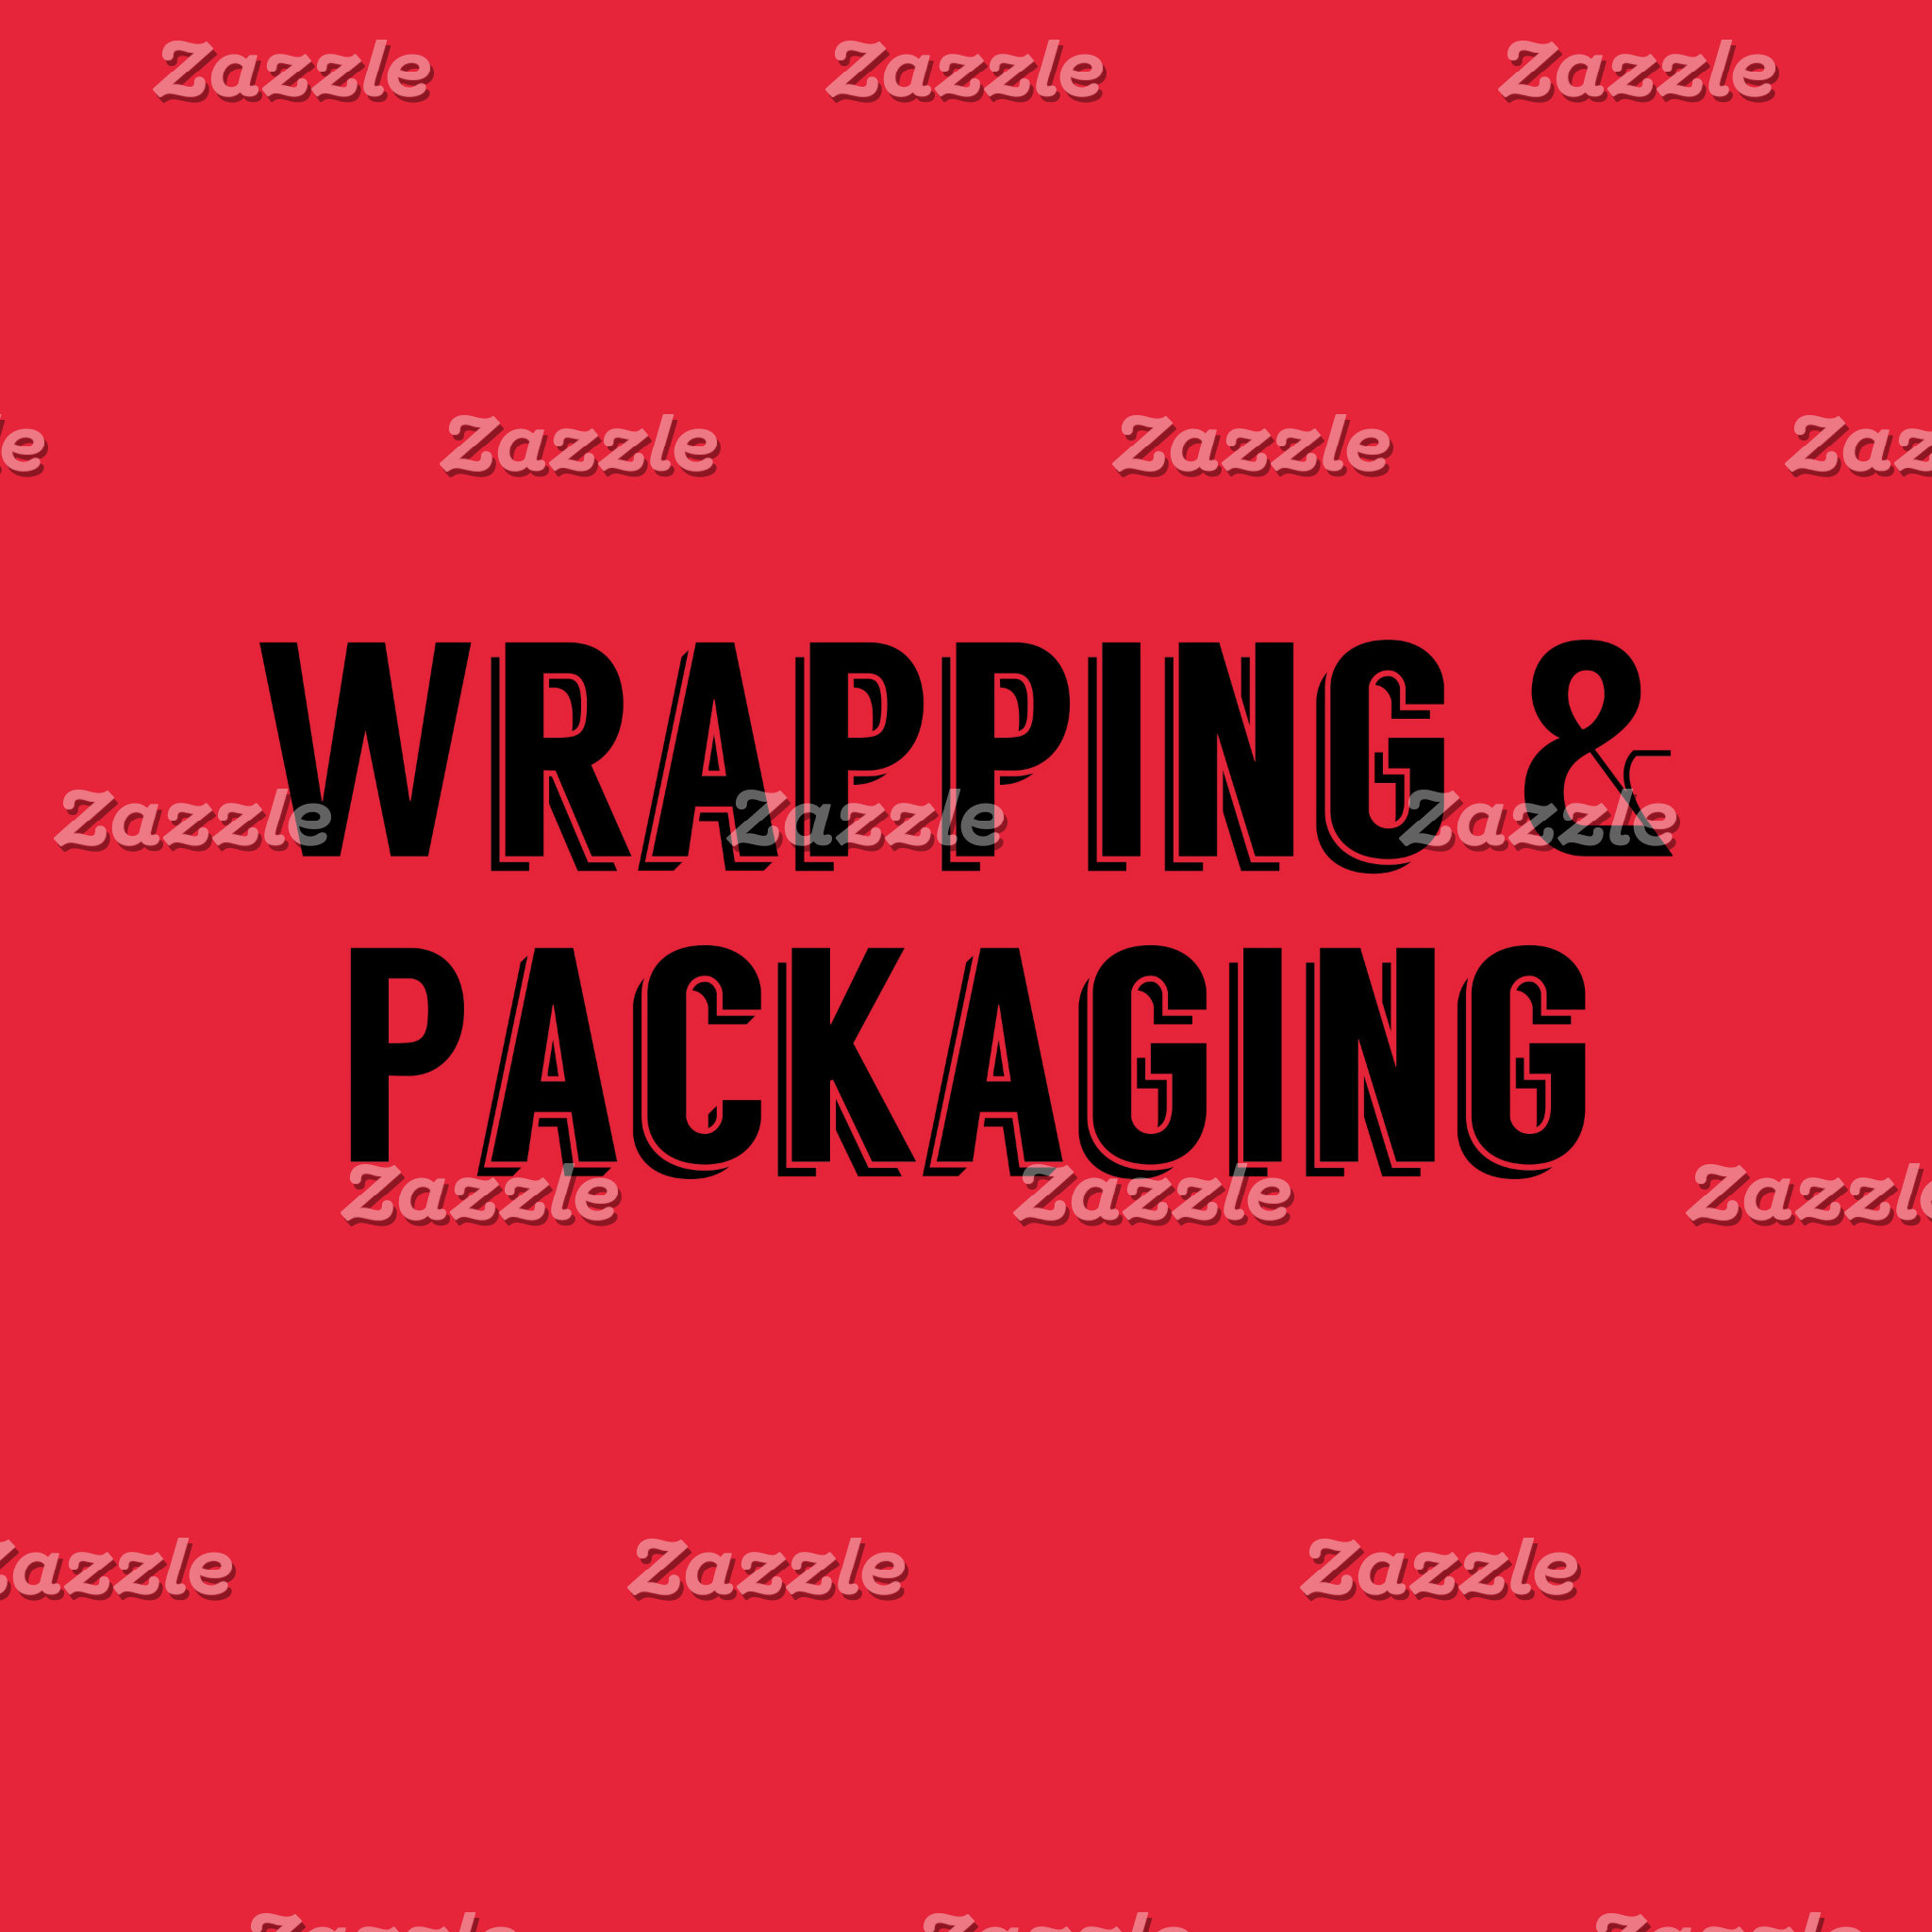 Packaging, Boxes, Bags & Wrapping paper